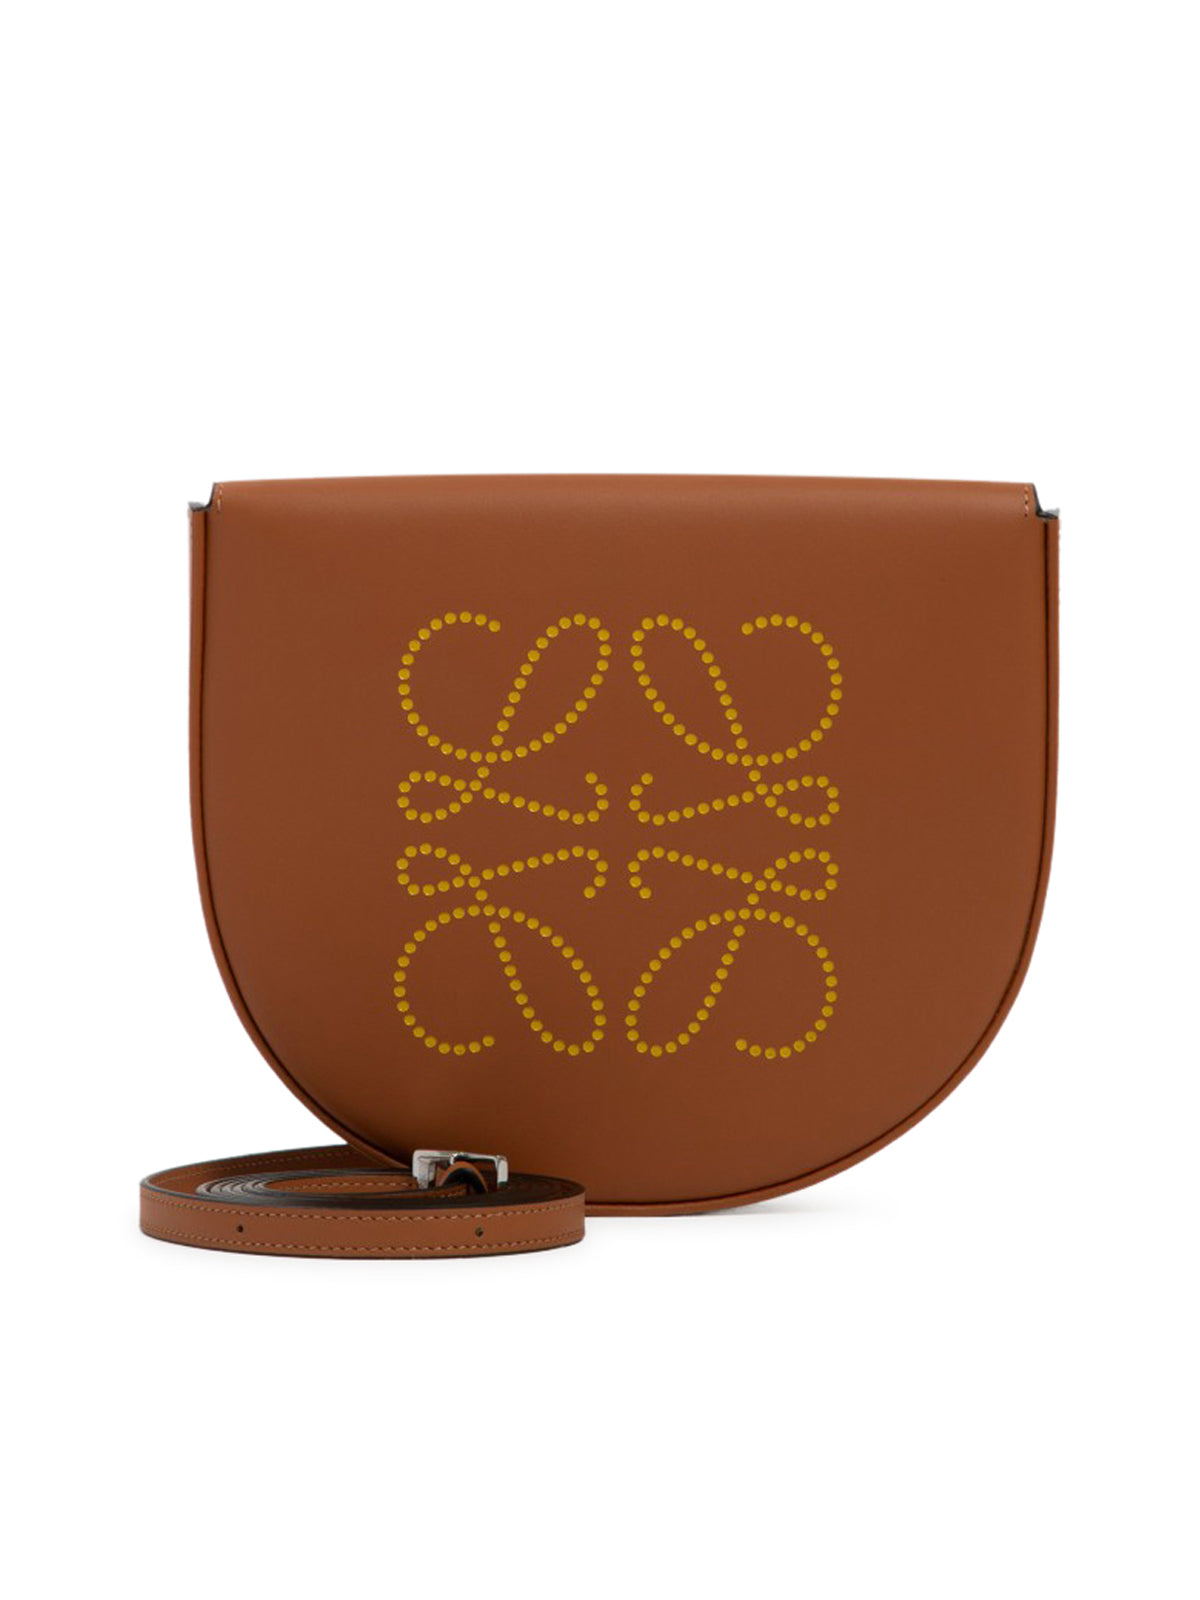 Tan Heel bag